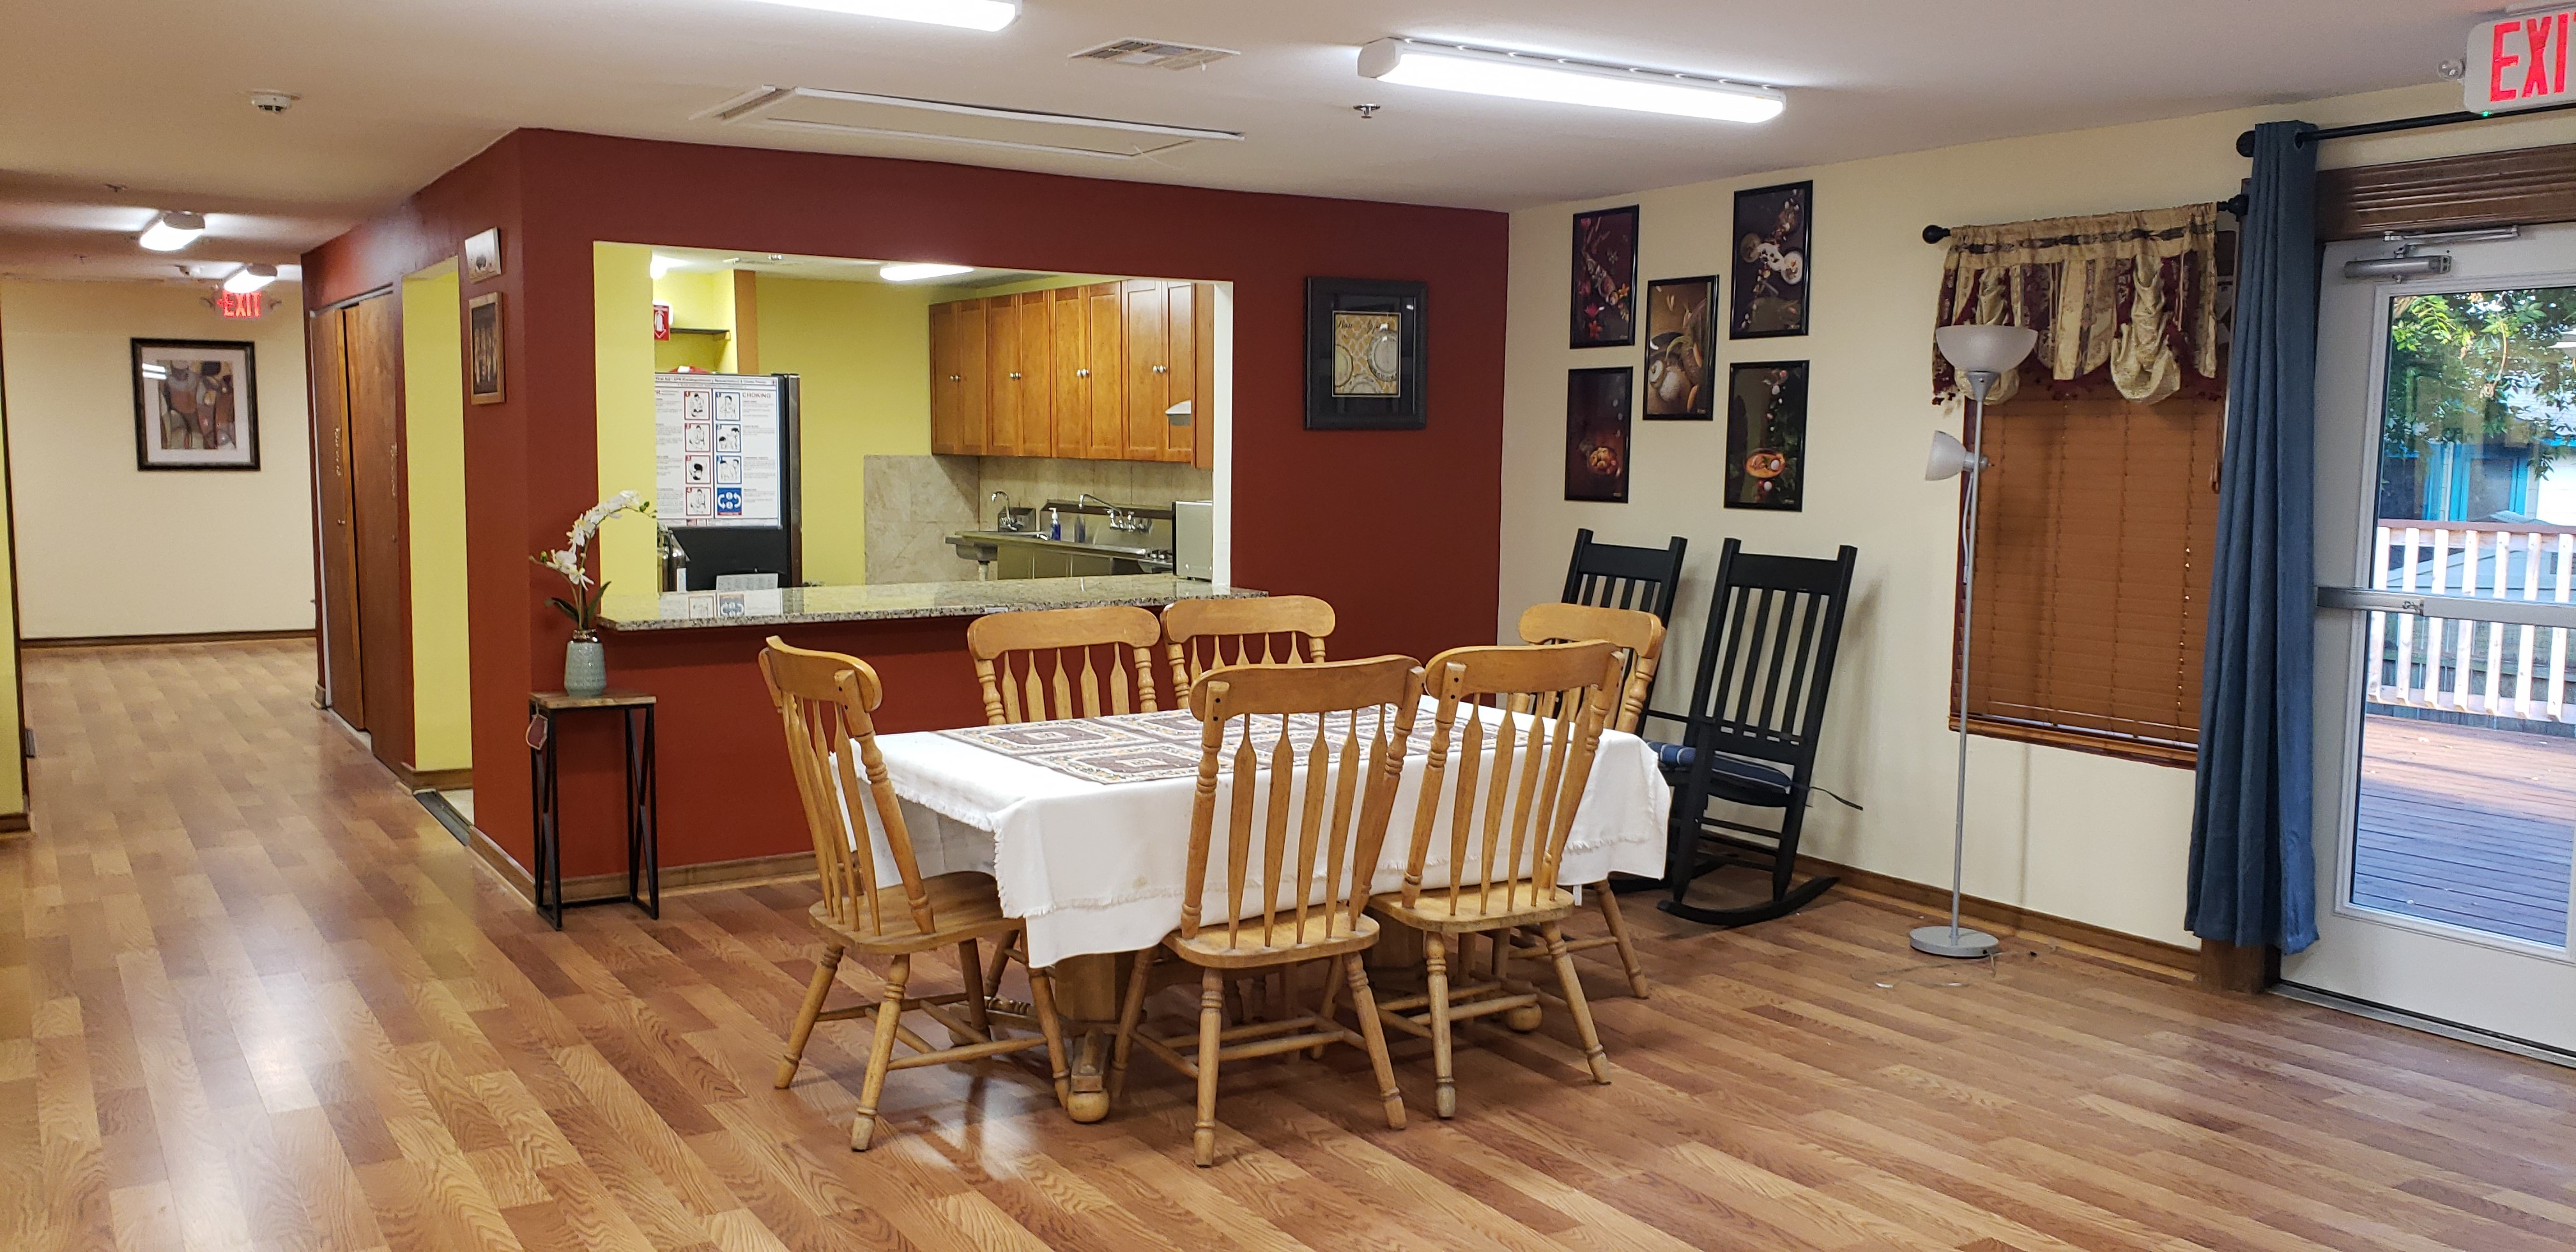 Senior Home Dining Area 2